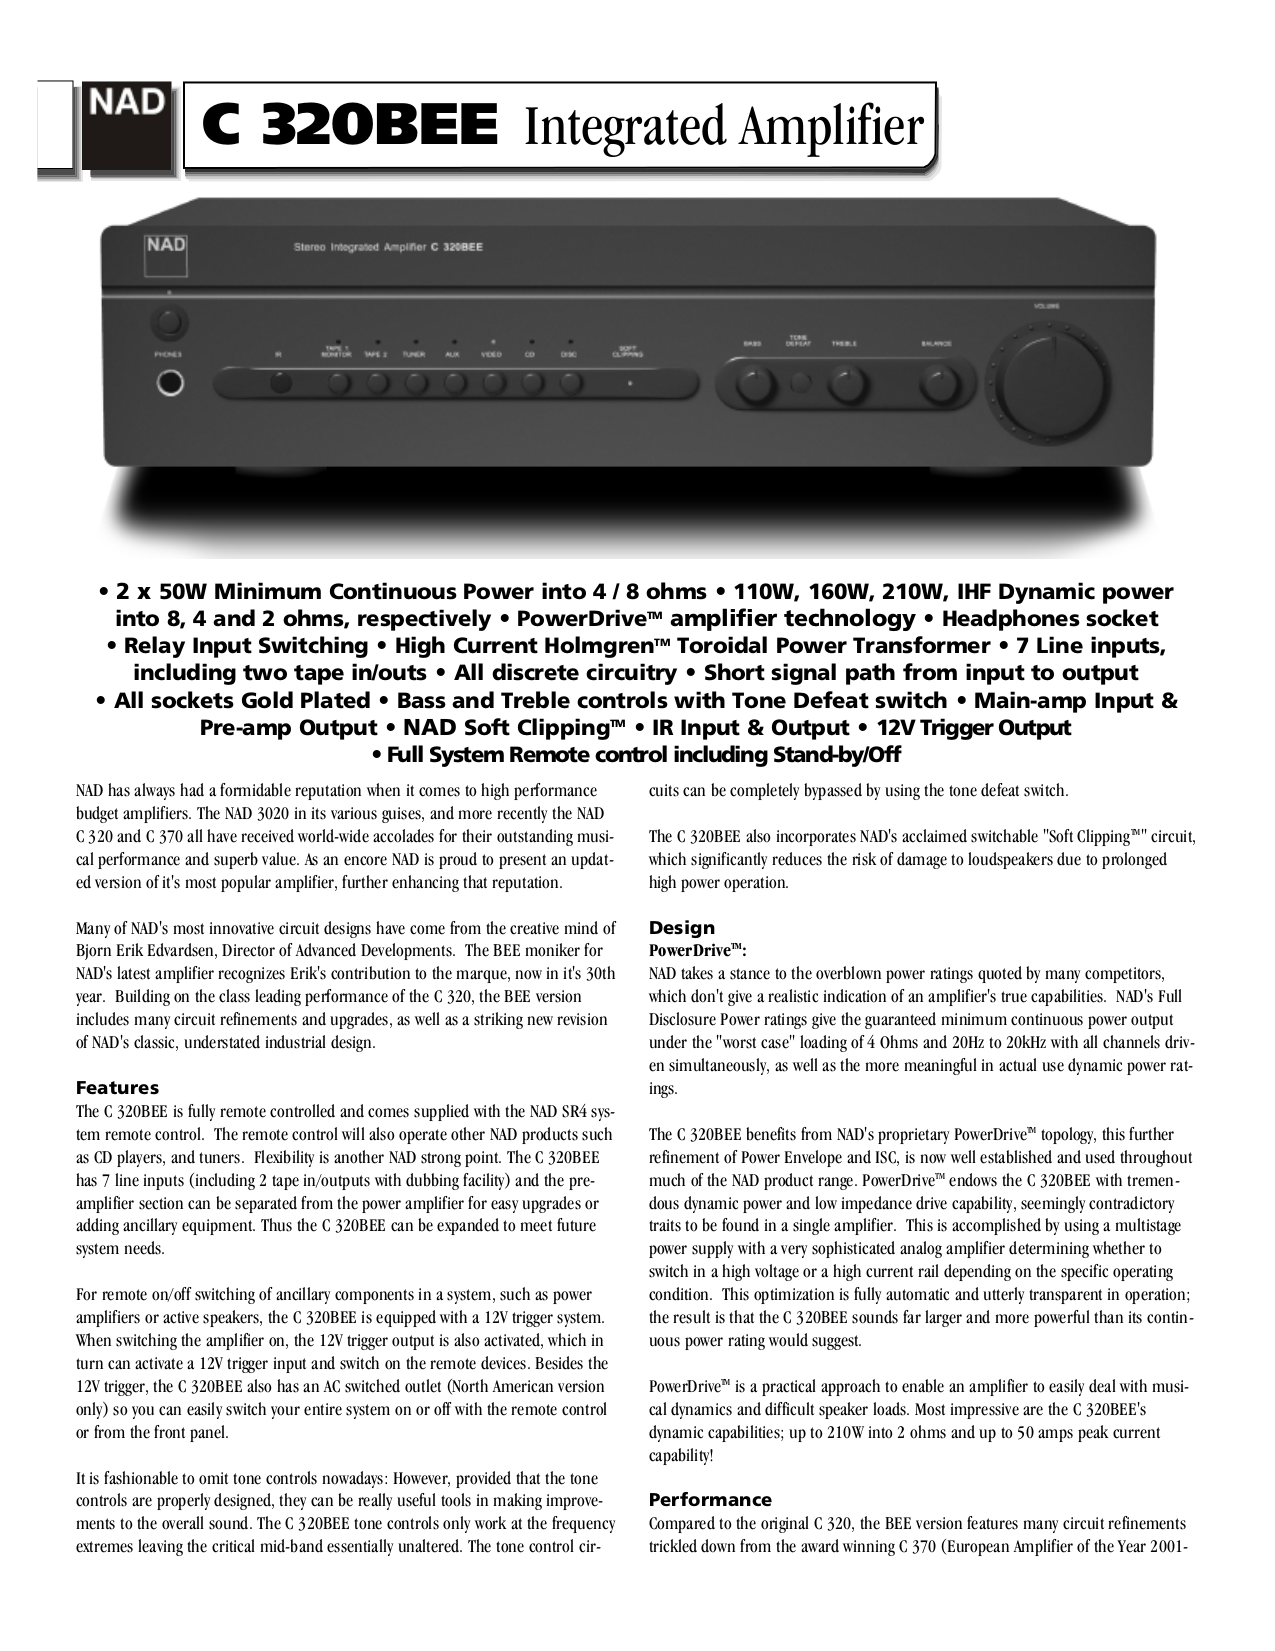 download free pdf for nad c320bee amp manual rh umlib com nad c320 service manual pdf nad c320 service manual